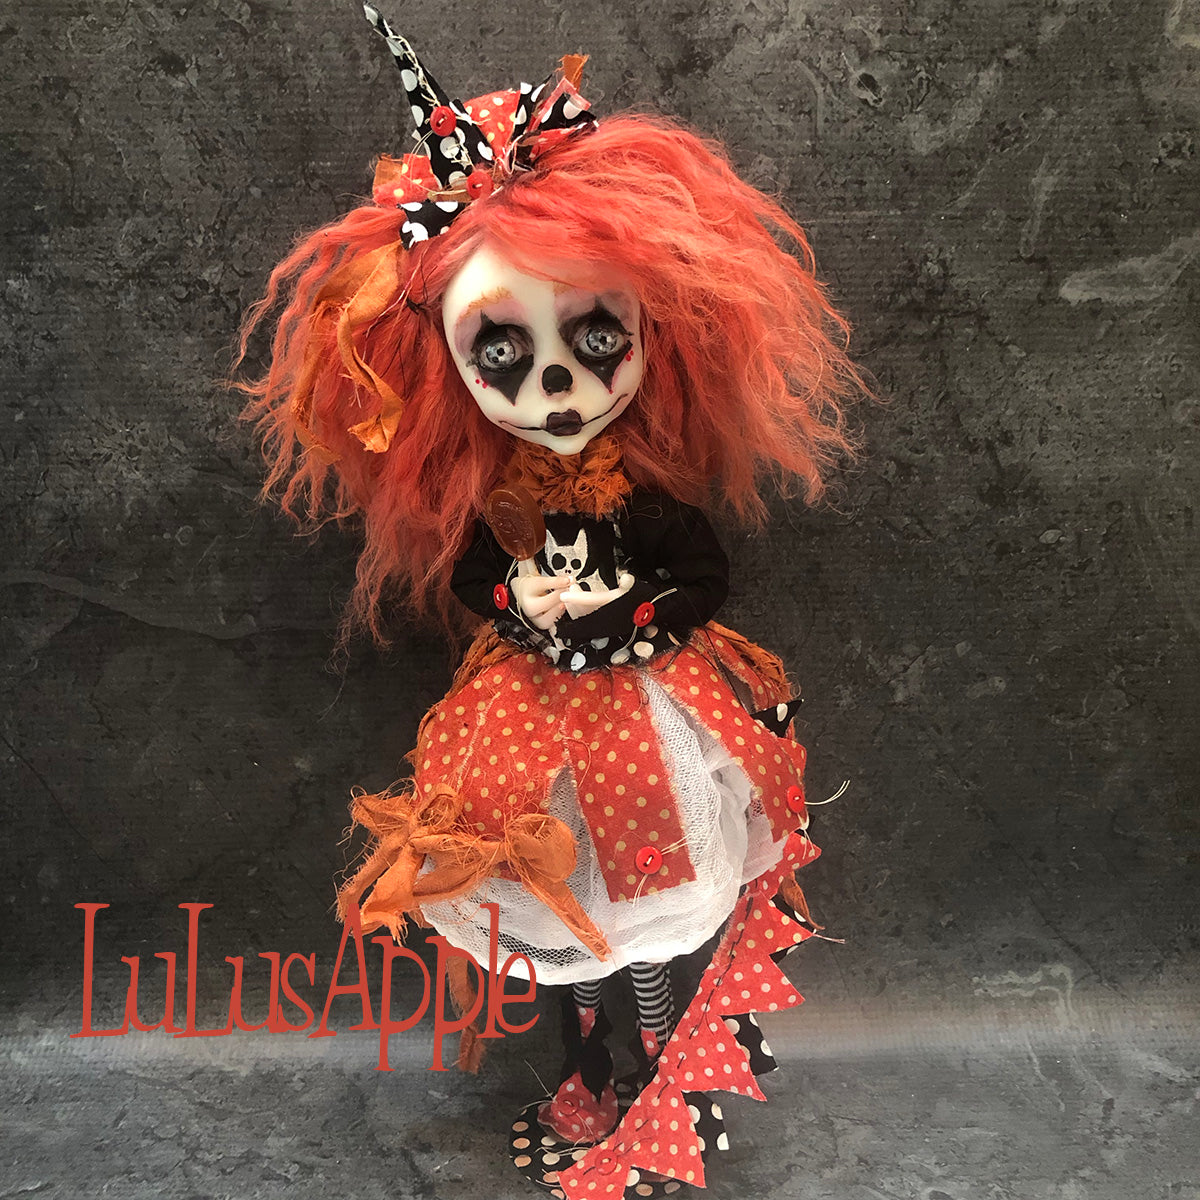 Tuesday PoP Poupee Bat Dark Cirque OOAK Art Doll LuLusApple